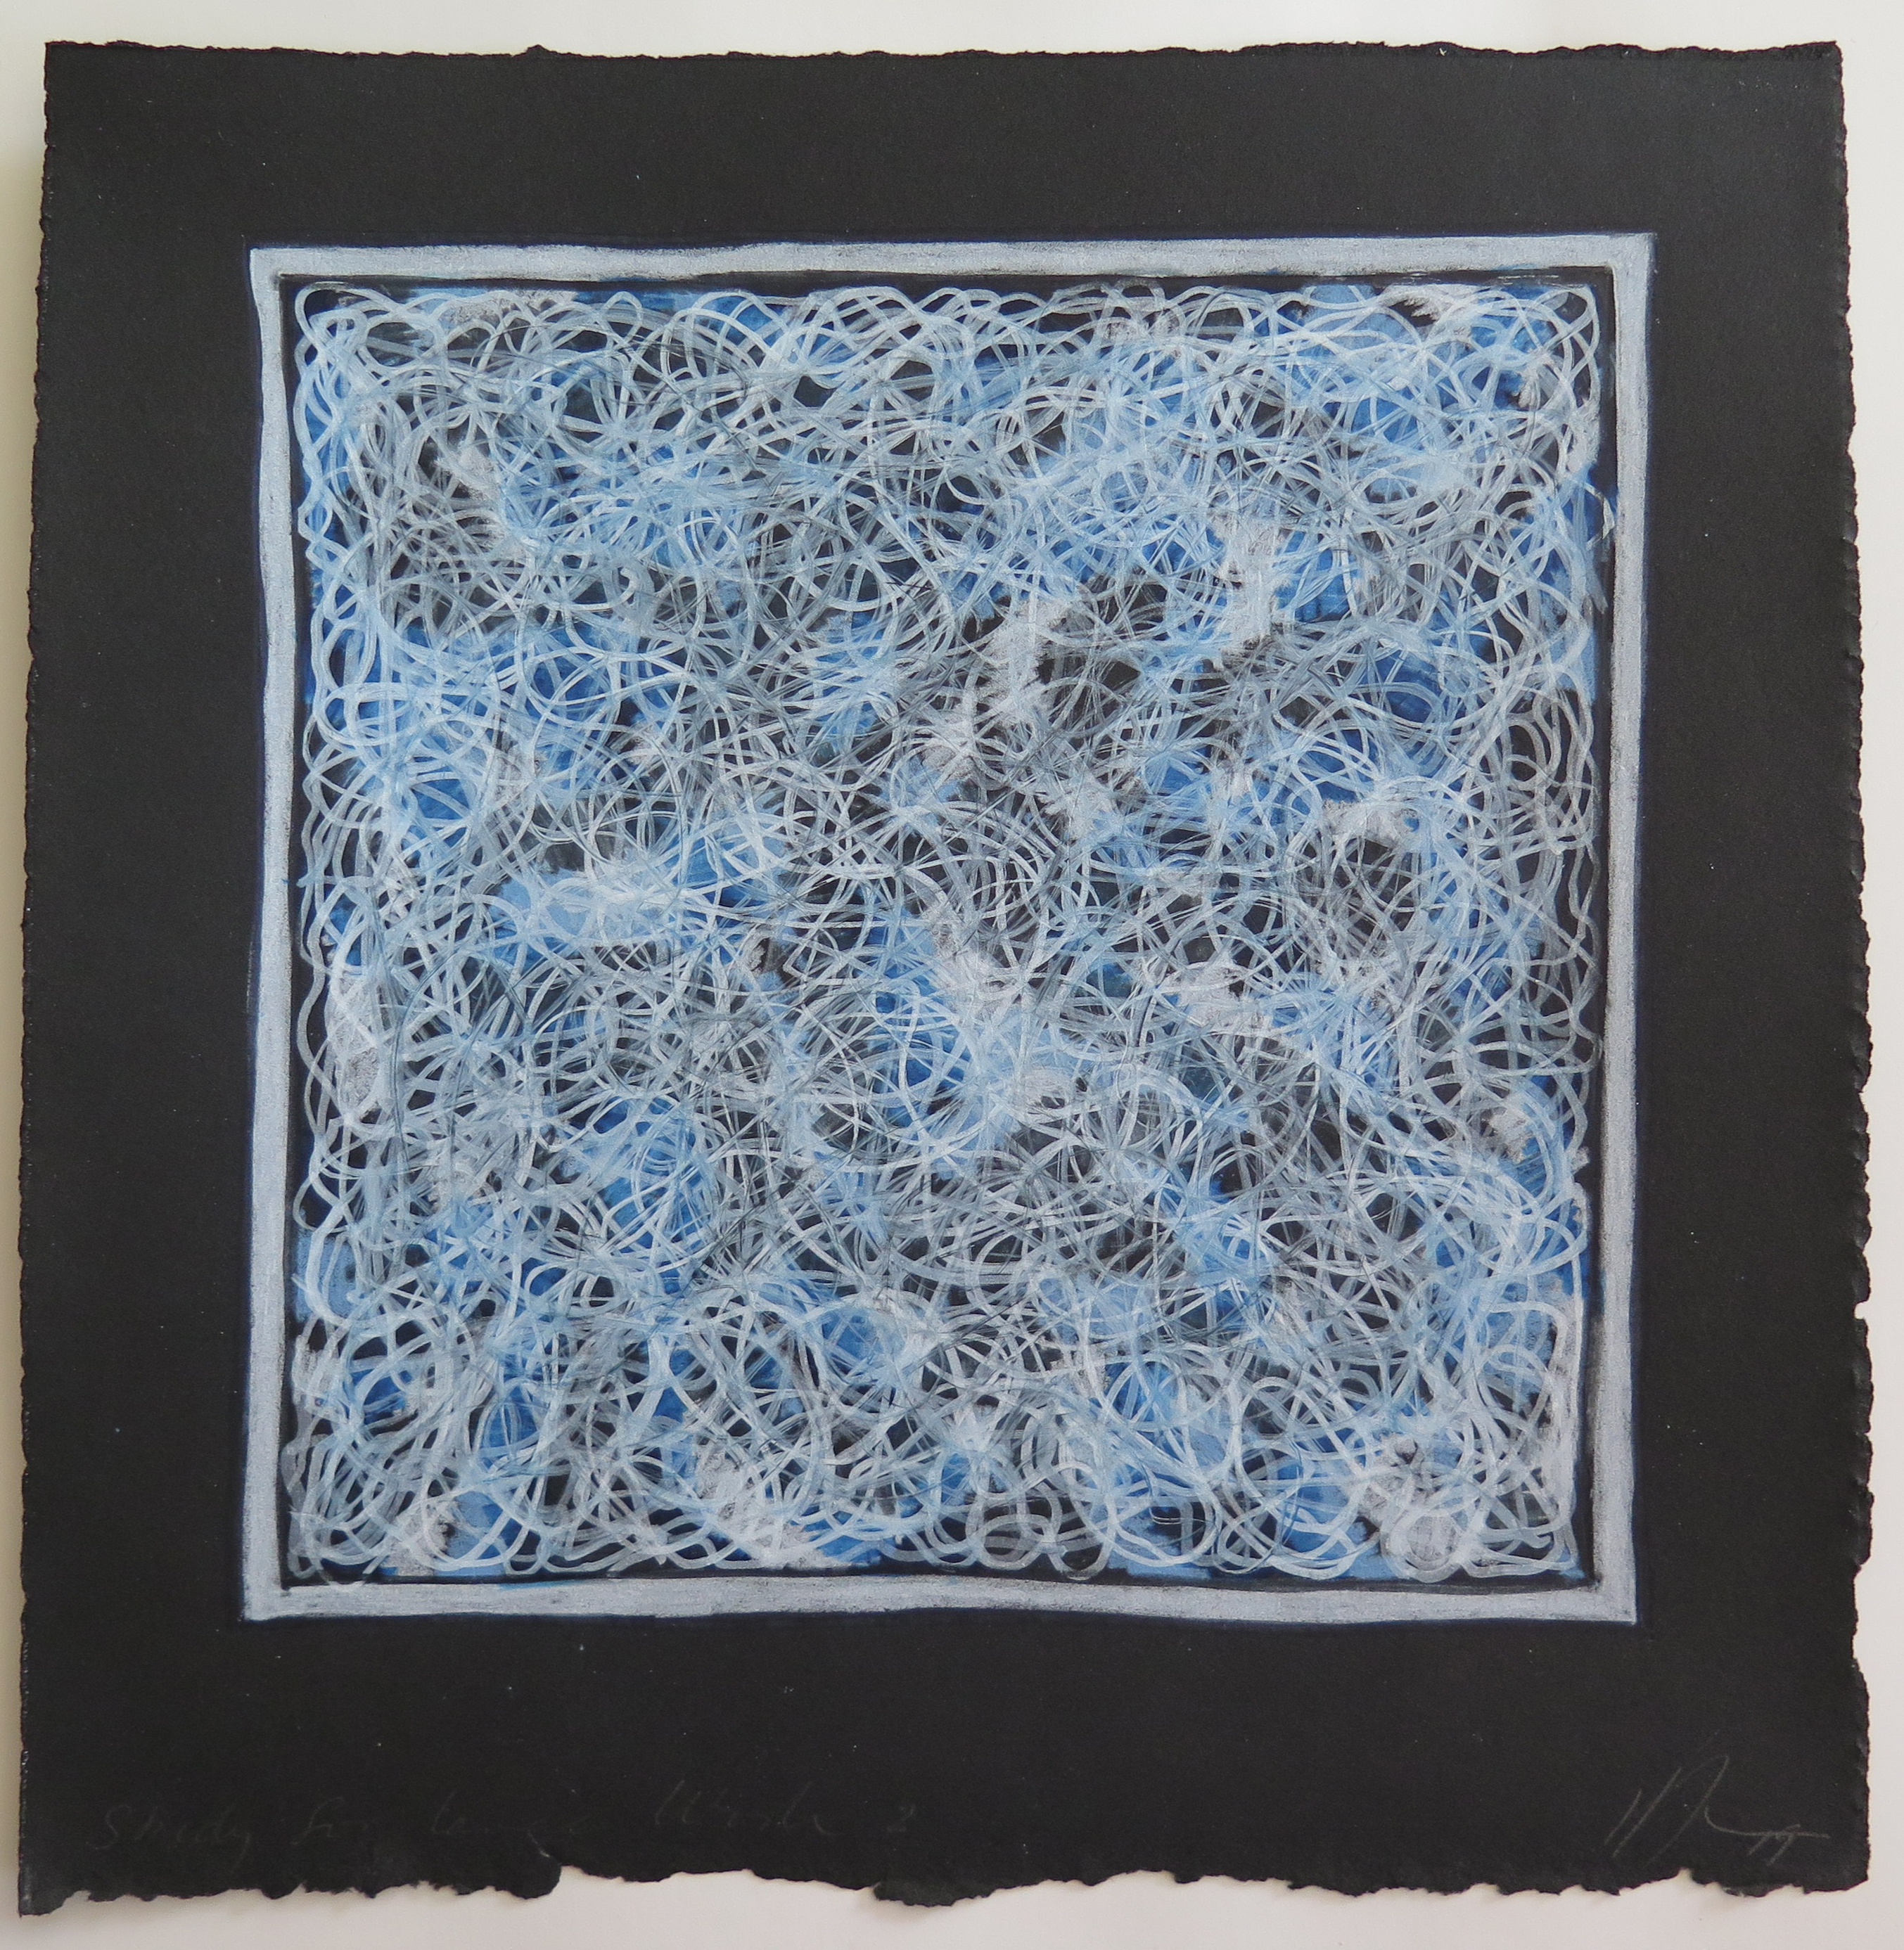 Lyn Horton, Study for Large Work 2, 2019, 9.25 inches square, colored pencil and ink on rag paper